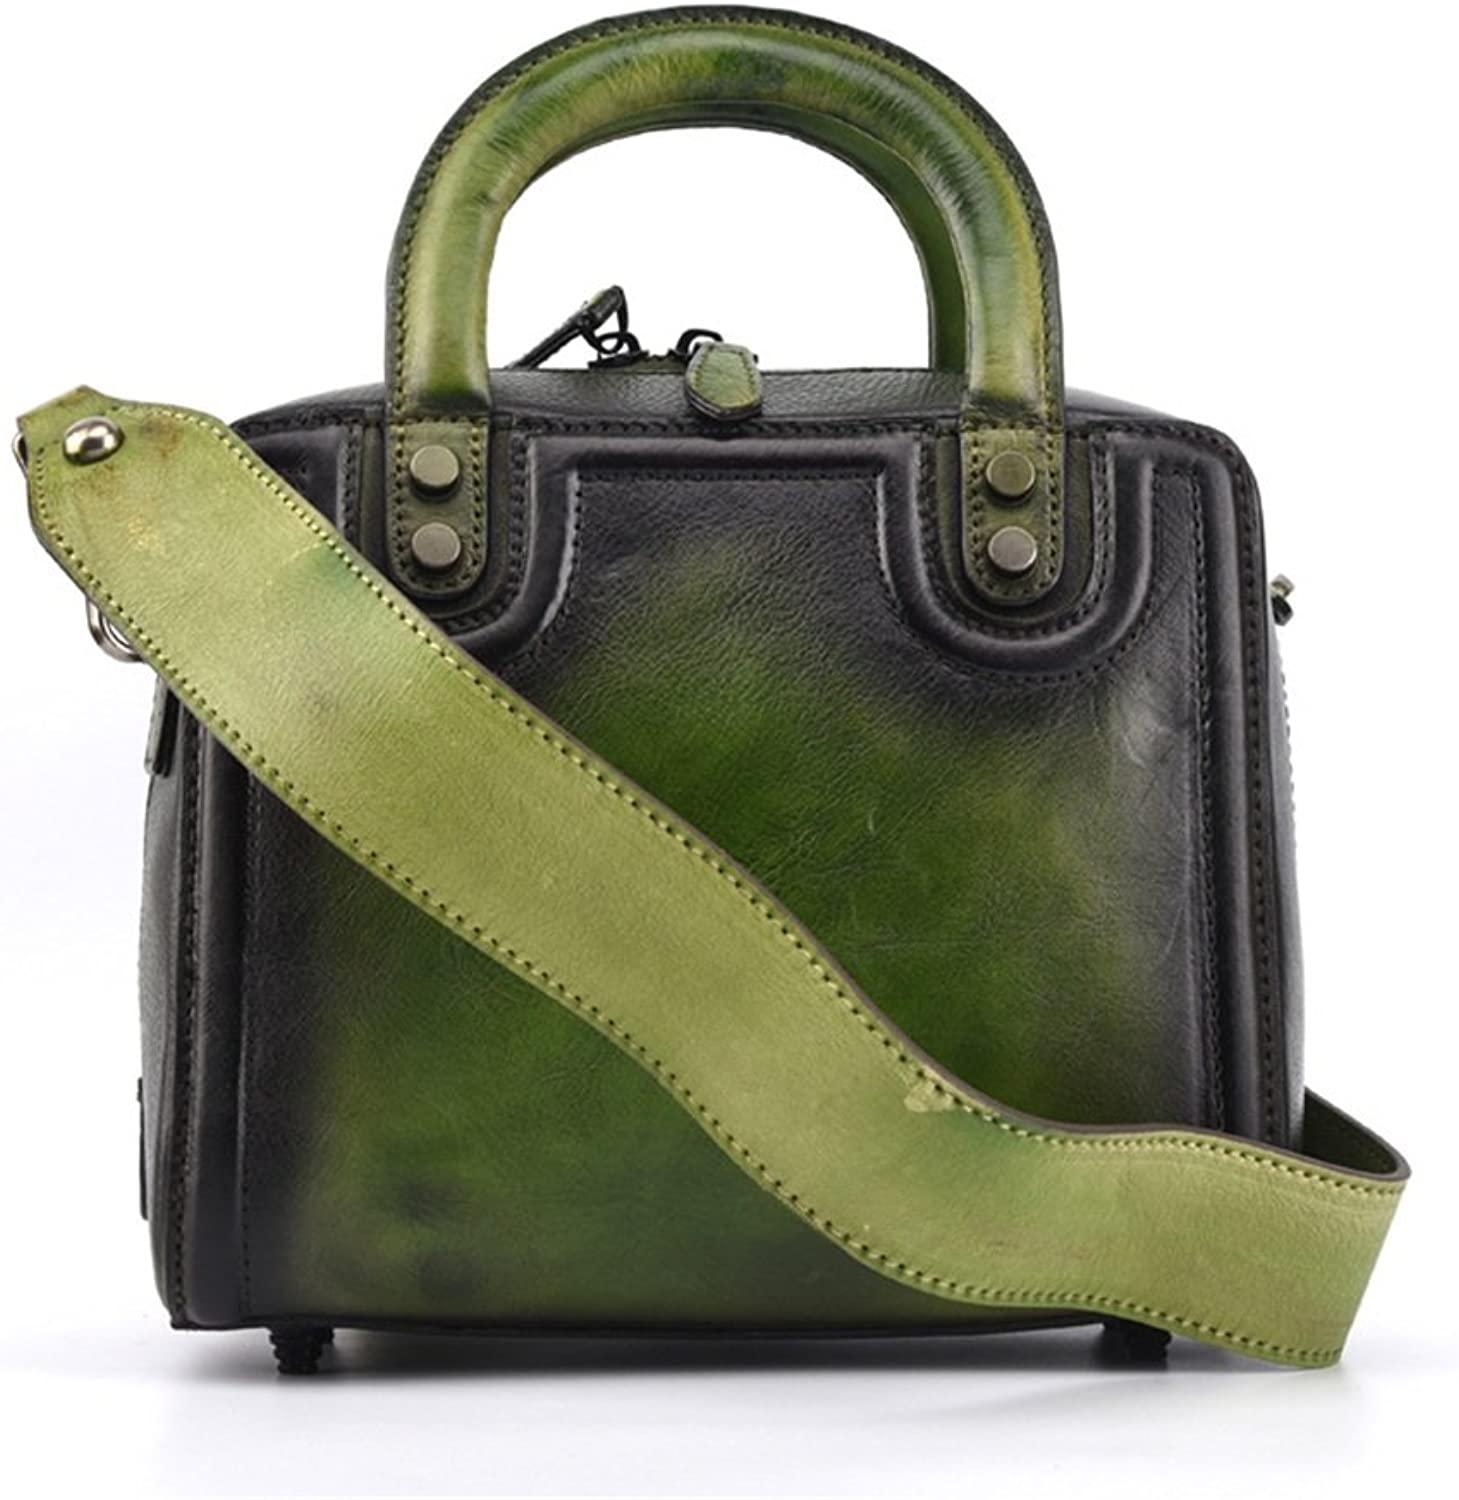 Professional Bag New The First Layer of Leather Handbag Hand-colord Retro Style Solid color Tote Bag Outdoor Travel Essentials (color   Green)